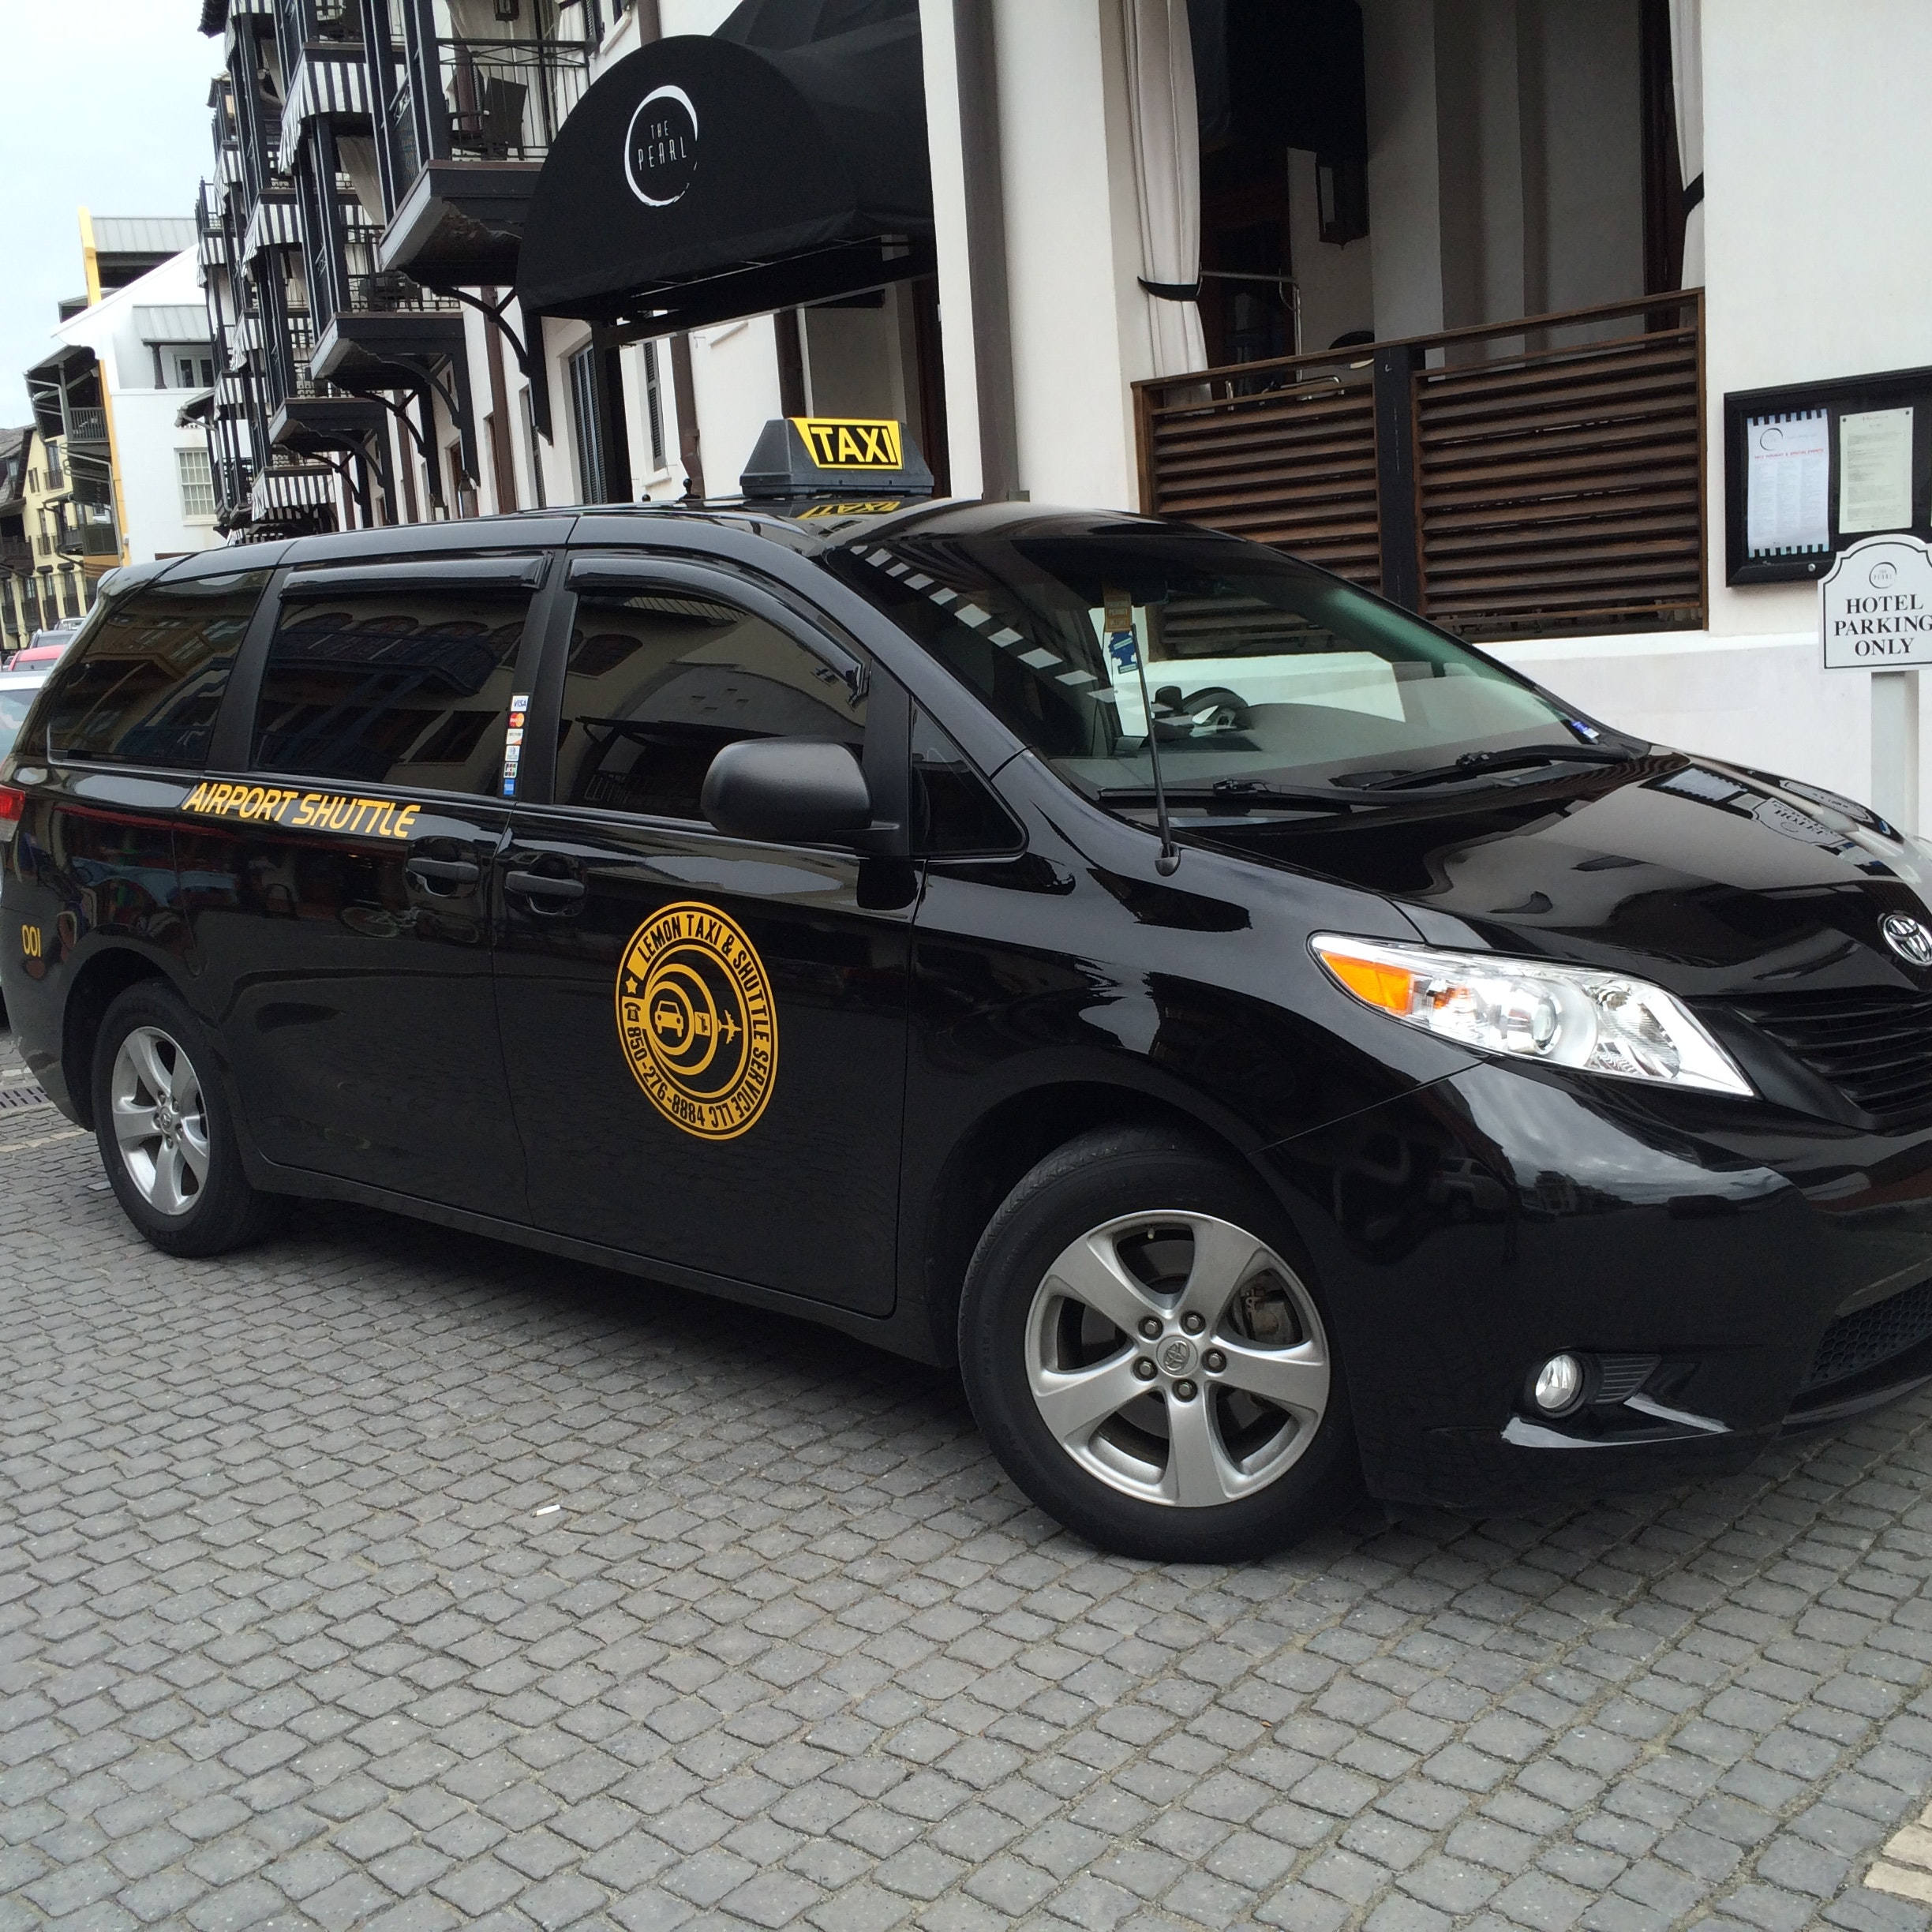 Lemon Taxi and Shuttle Service vehicle 1